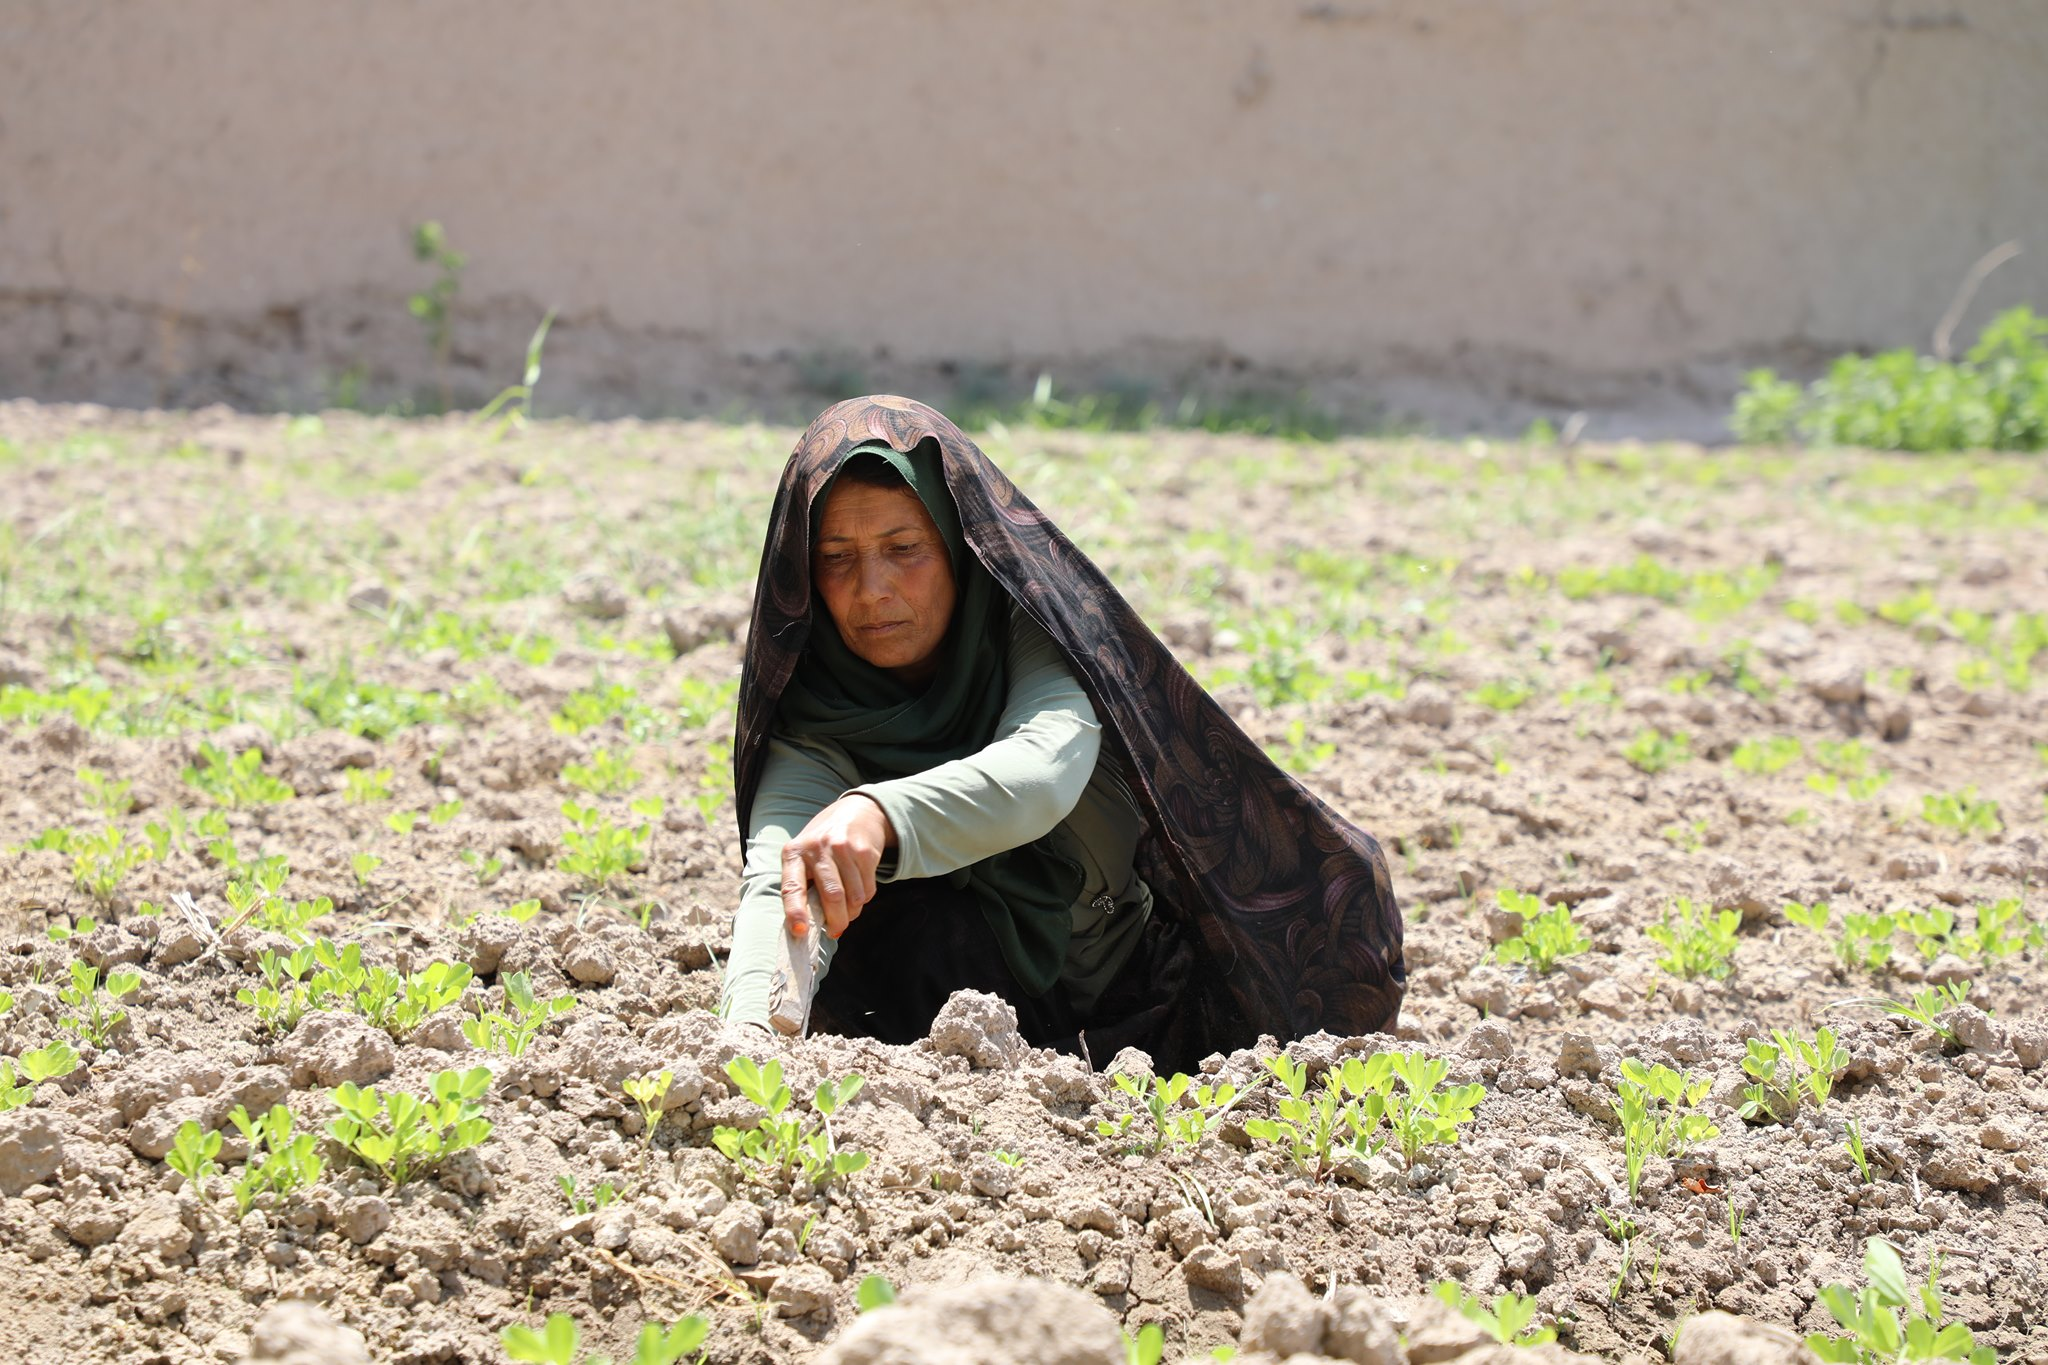 Cultivation of (Peanut) for the first time in Herat, by Second National Priority program 2 (SNapp2) its seeds were distributed to women farmers by the Ministry of Agriculture